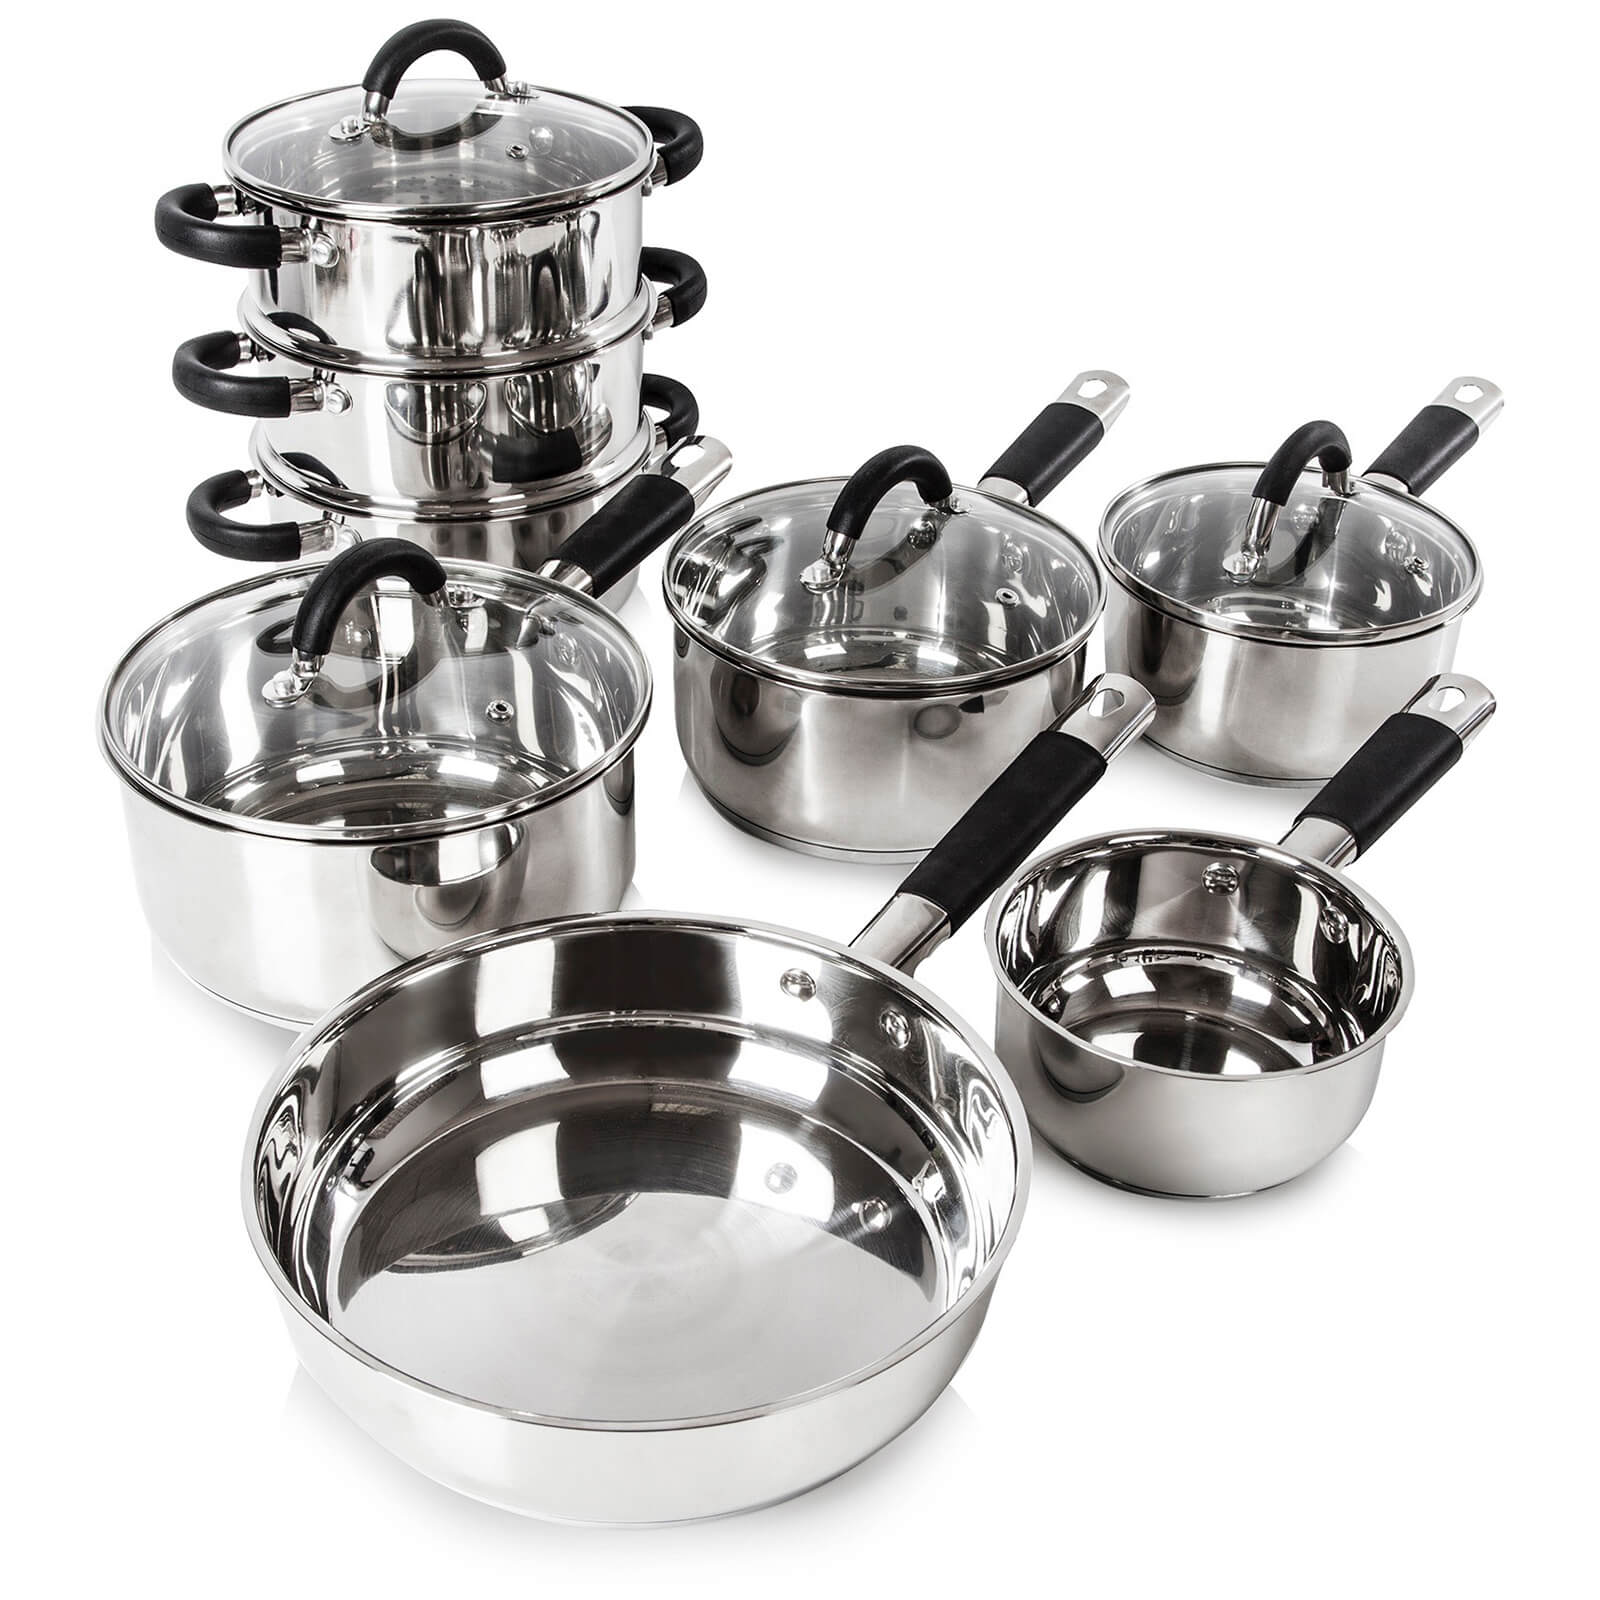 Tower Essentials Pan Set - Stainless Steel (8 Piece)